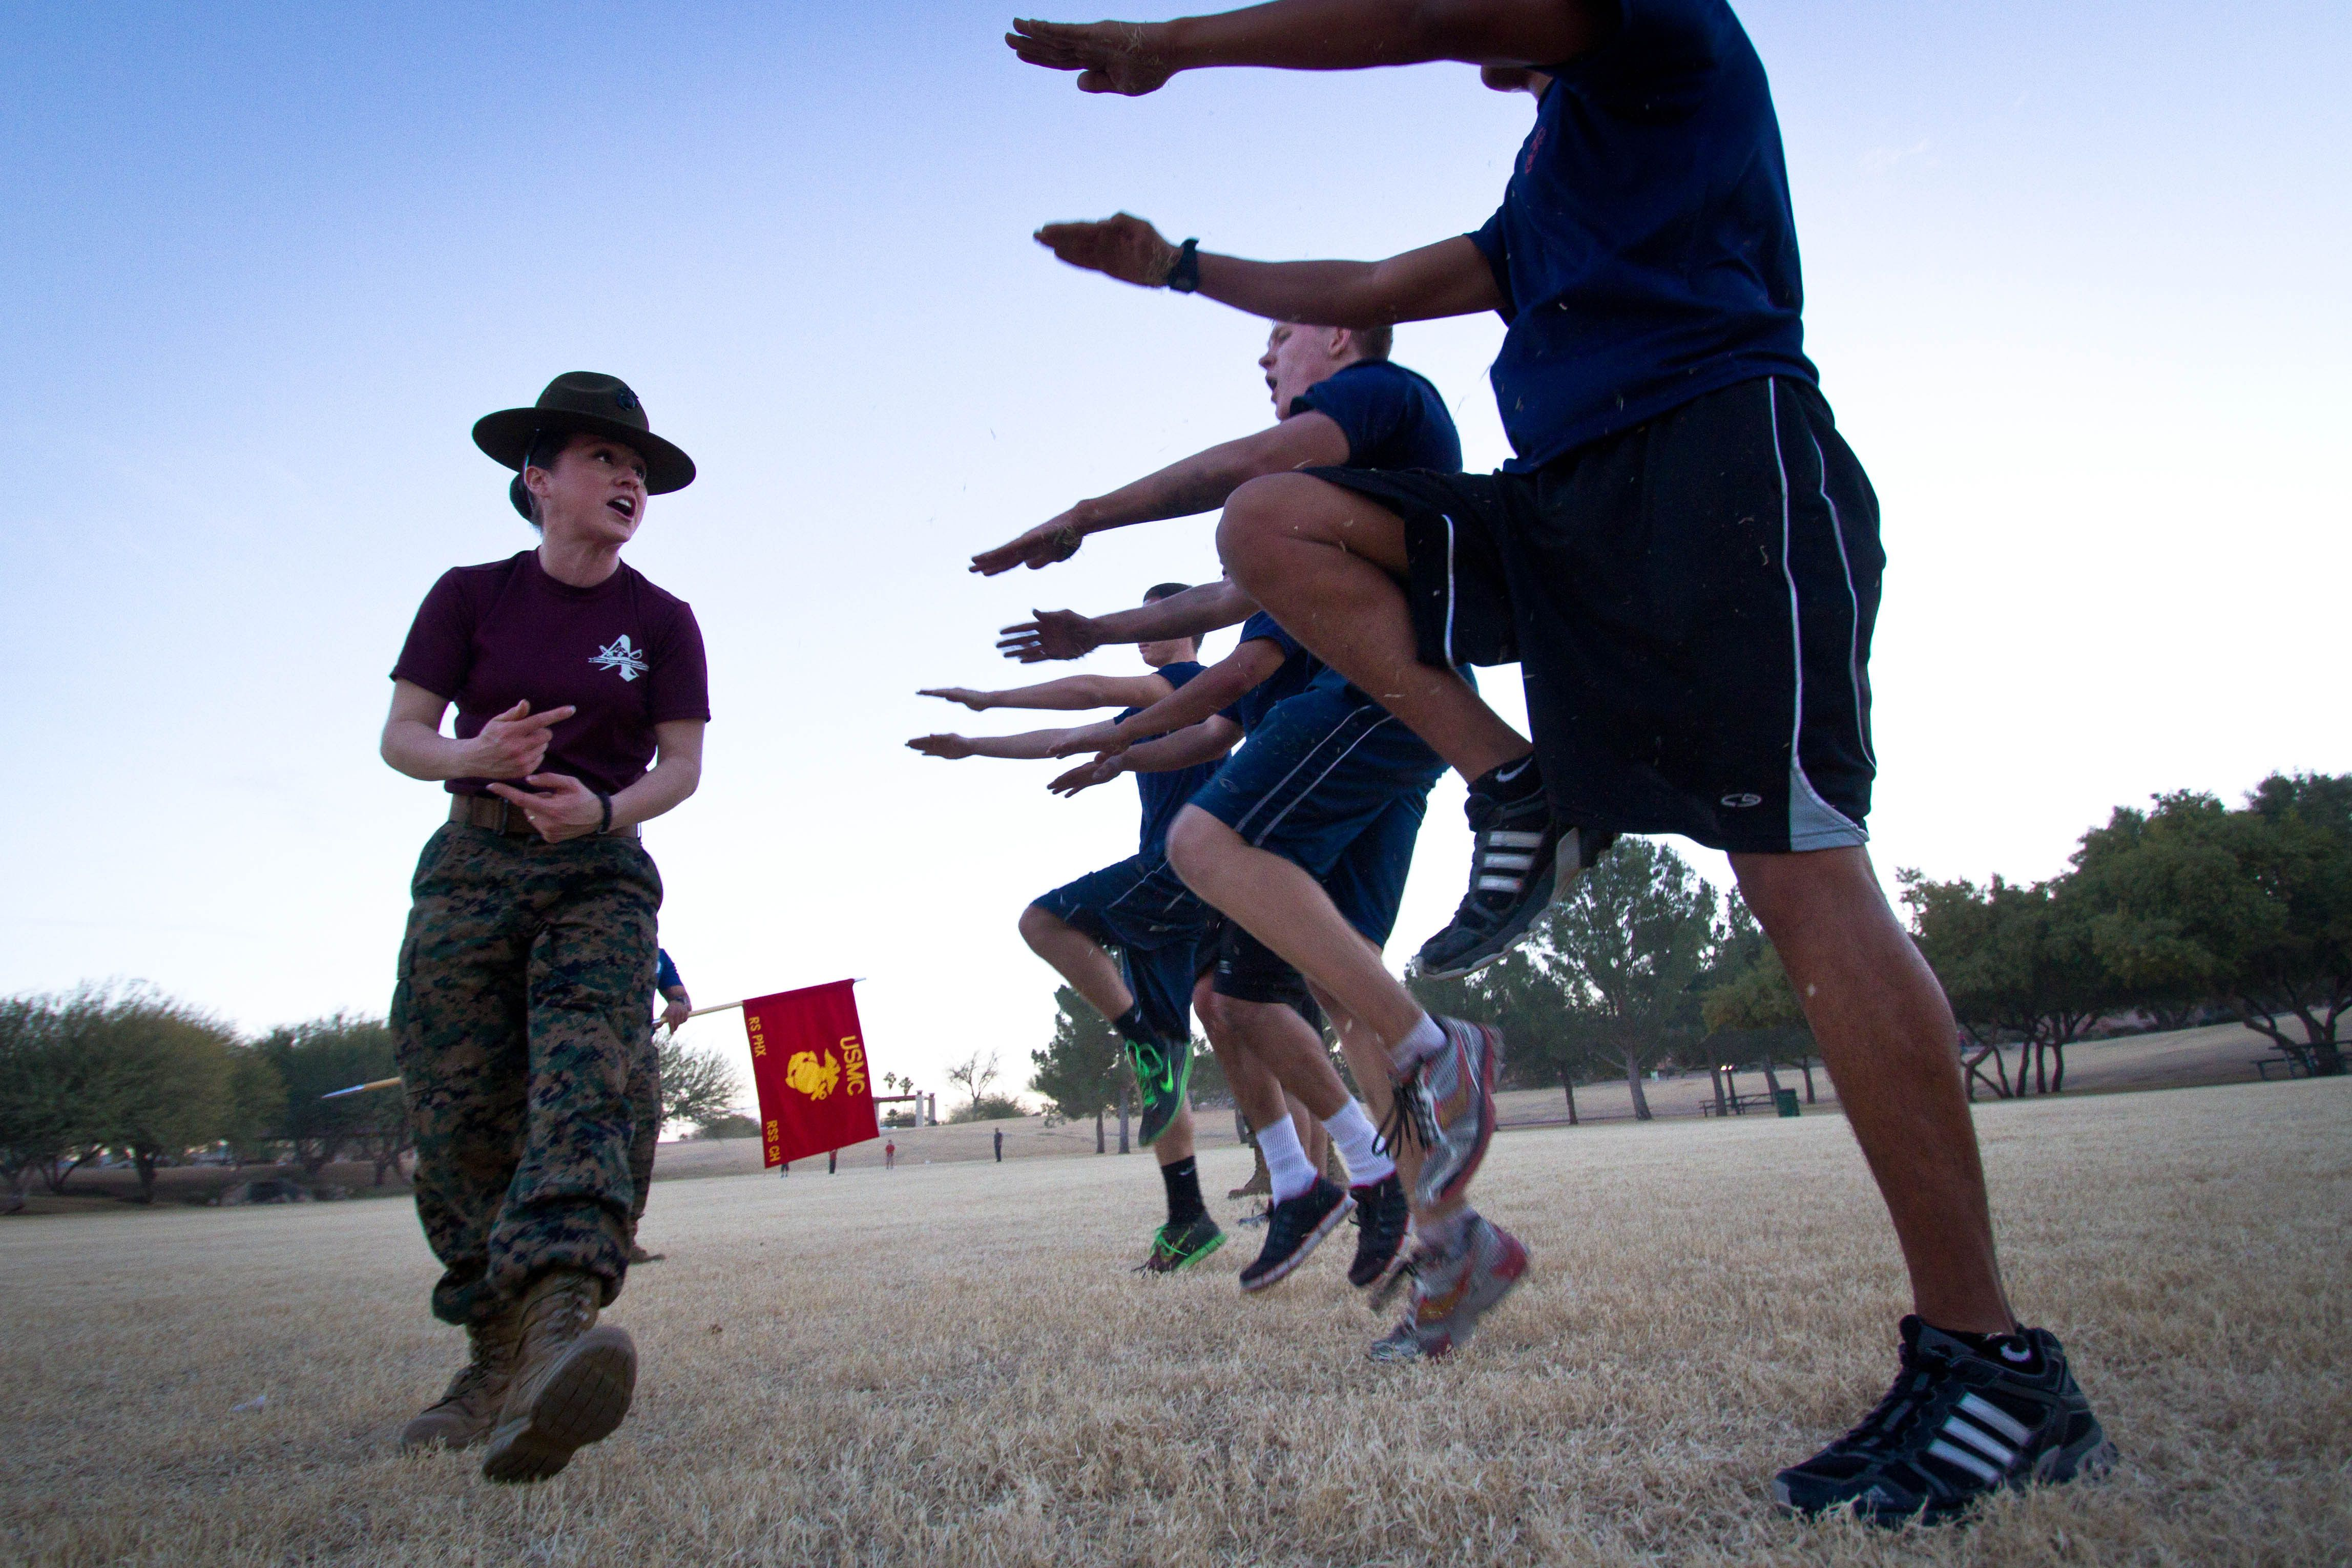 More female Marine drill instructors needed as boot camp gender-integration continues